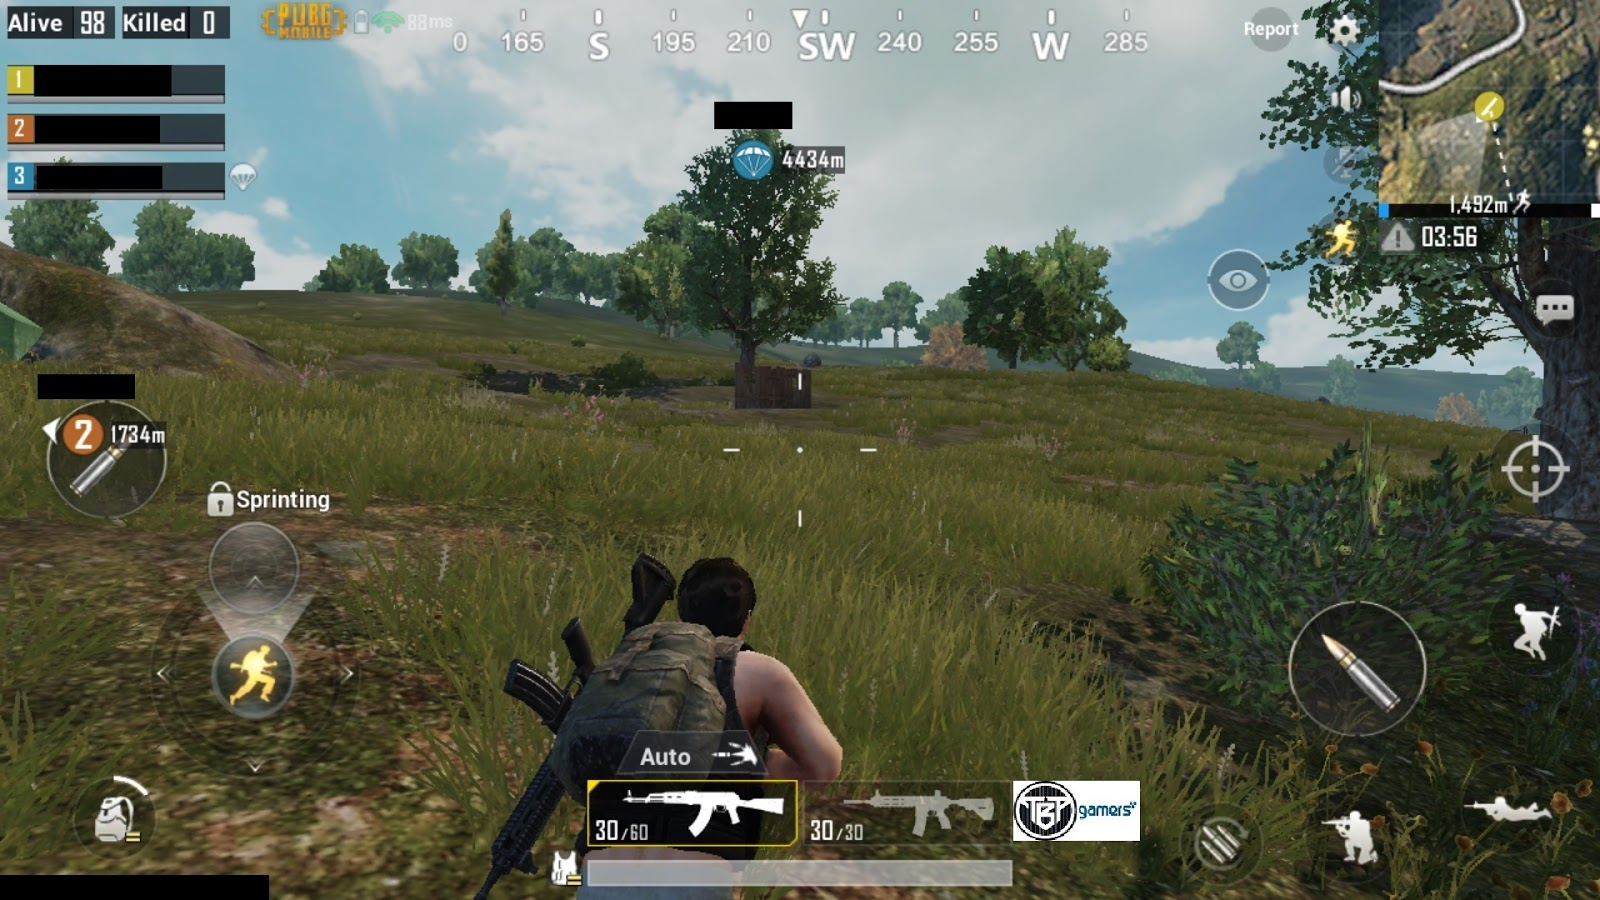 PUBG Mobile 0 8 0 Apk + Data [Official-Eng] for Android Download